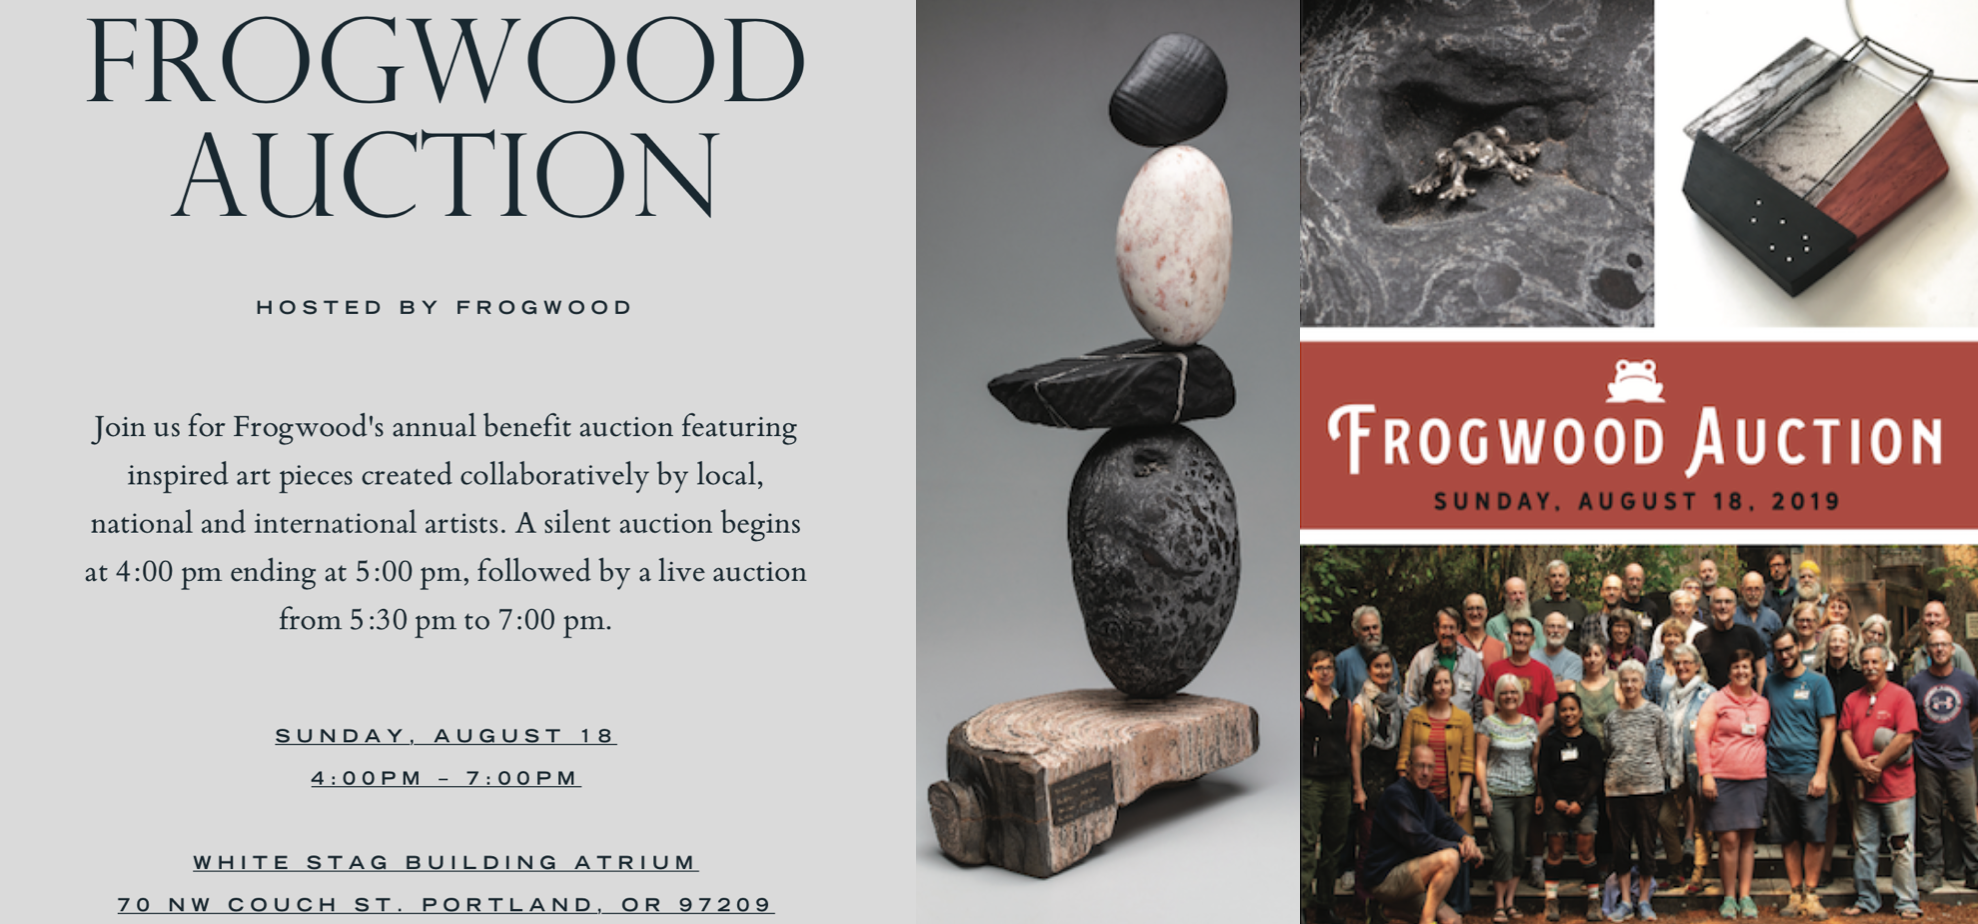 Frogwood Auction Invitation FINAL VERSION.png